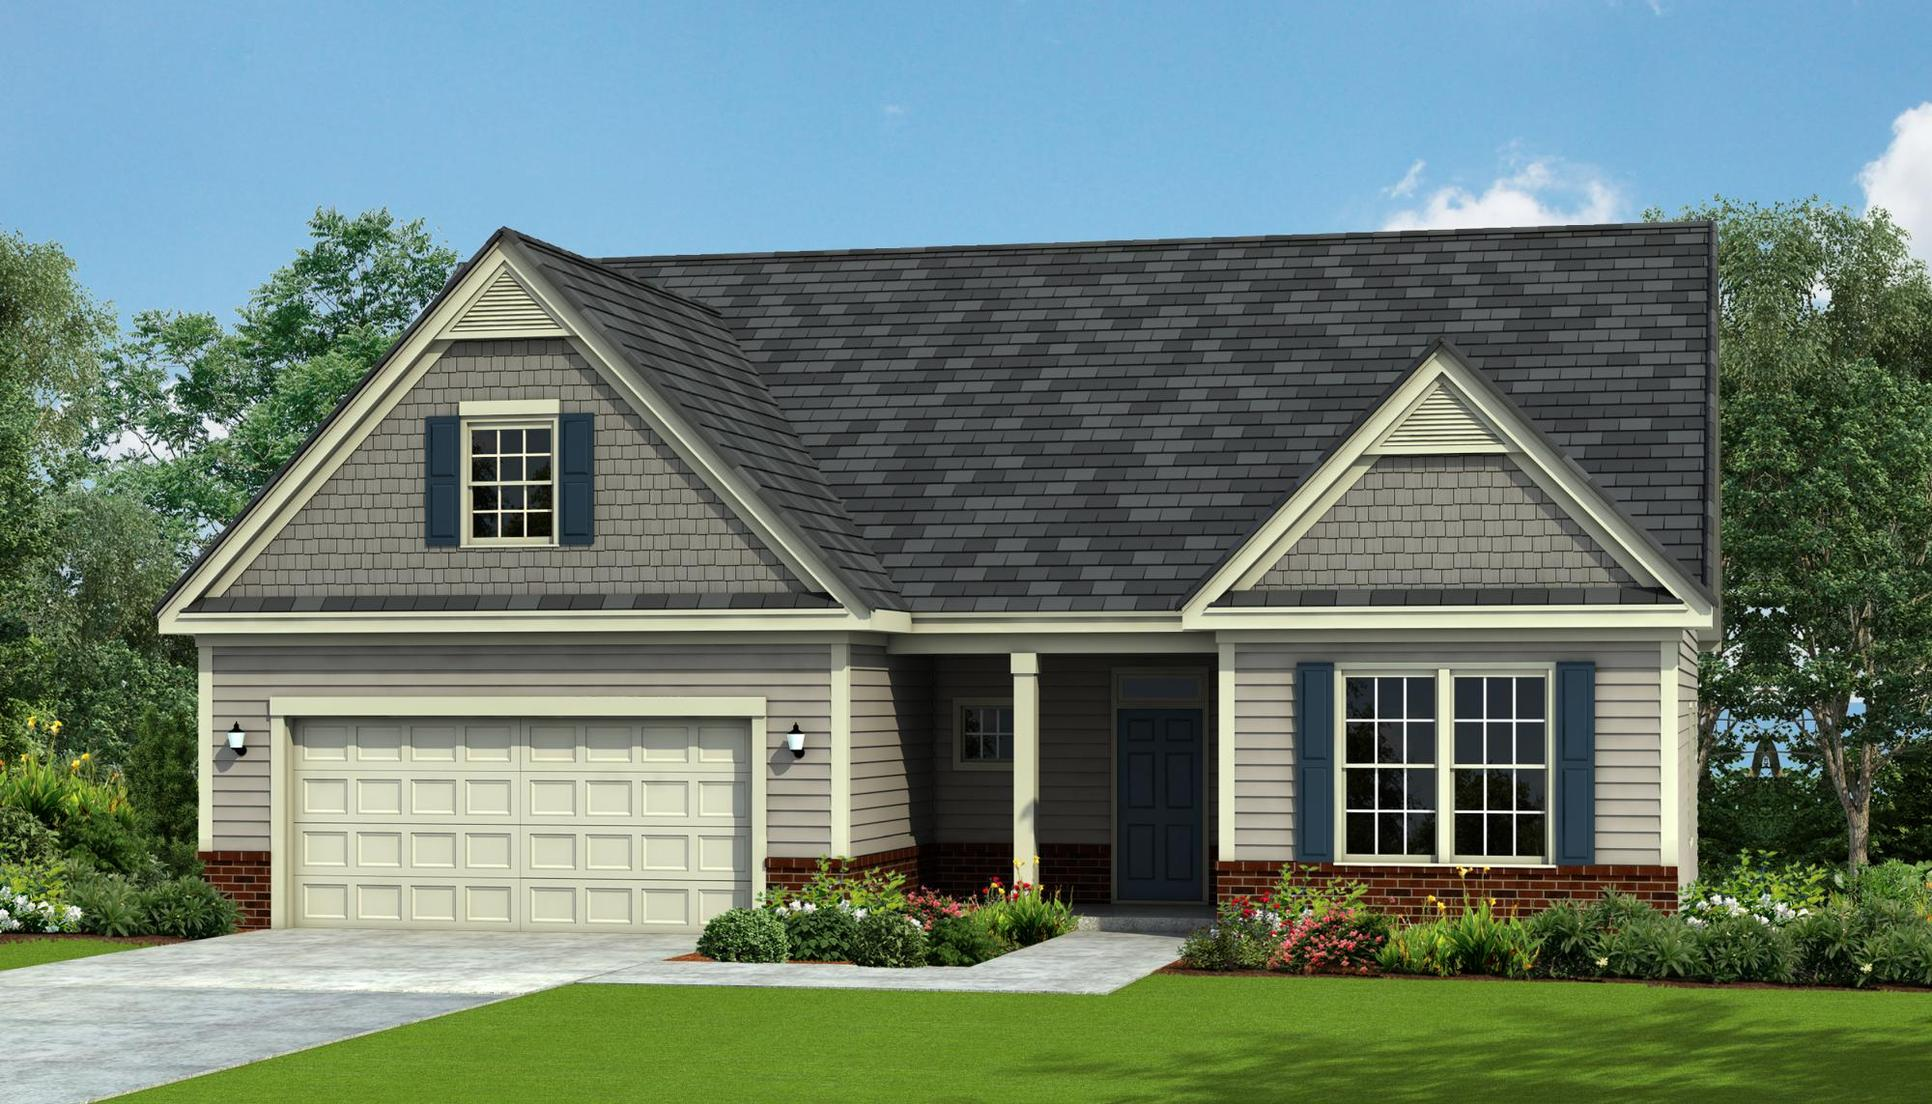 Exterior:Wrightsville Rendering - Elevation A